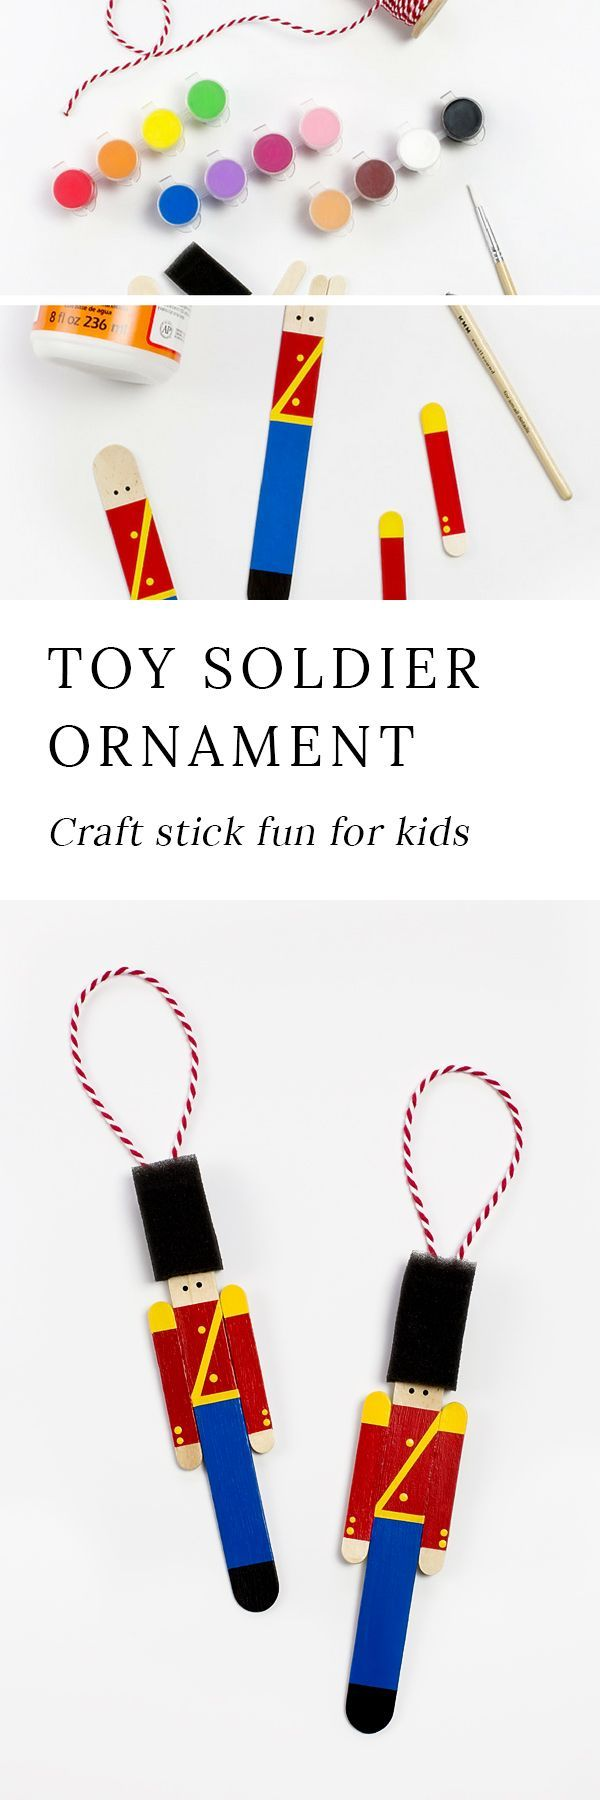 Crafters of all ages will enjoy this creative Christmas craft stick craft. These Toy Soldier Ornaments are a cute Christmas craft for home, school, or scouts! #christmasornaments #craftsticks #diyornaments